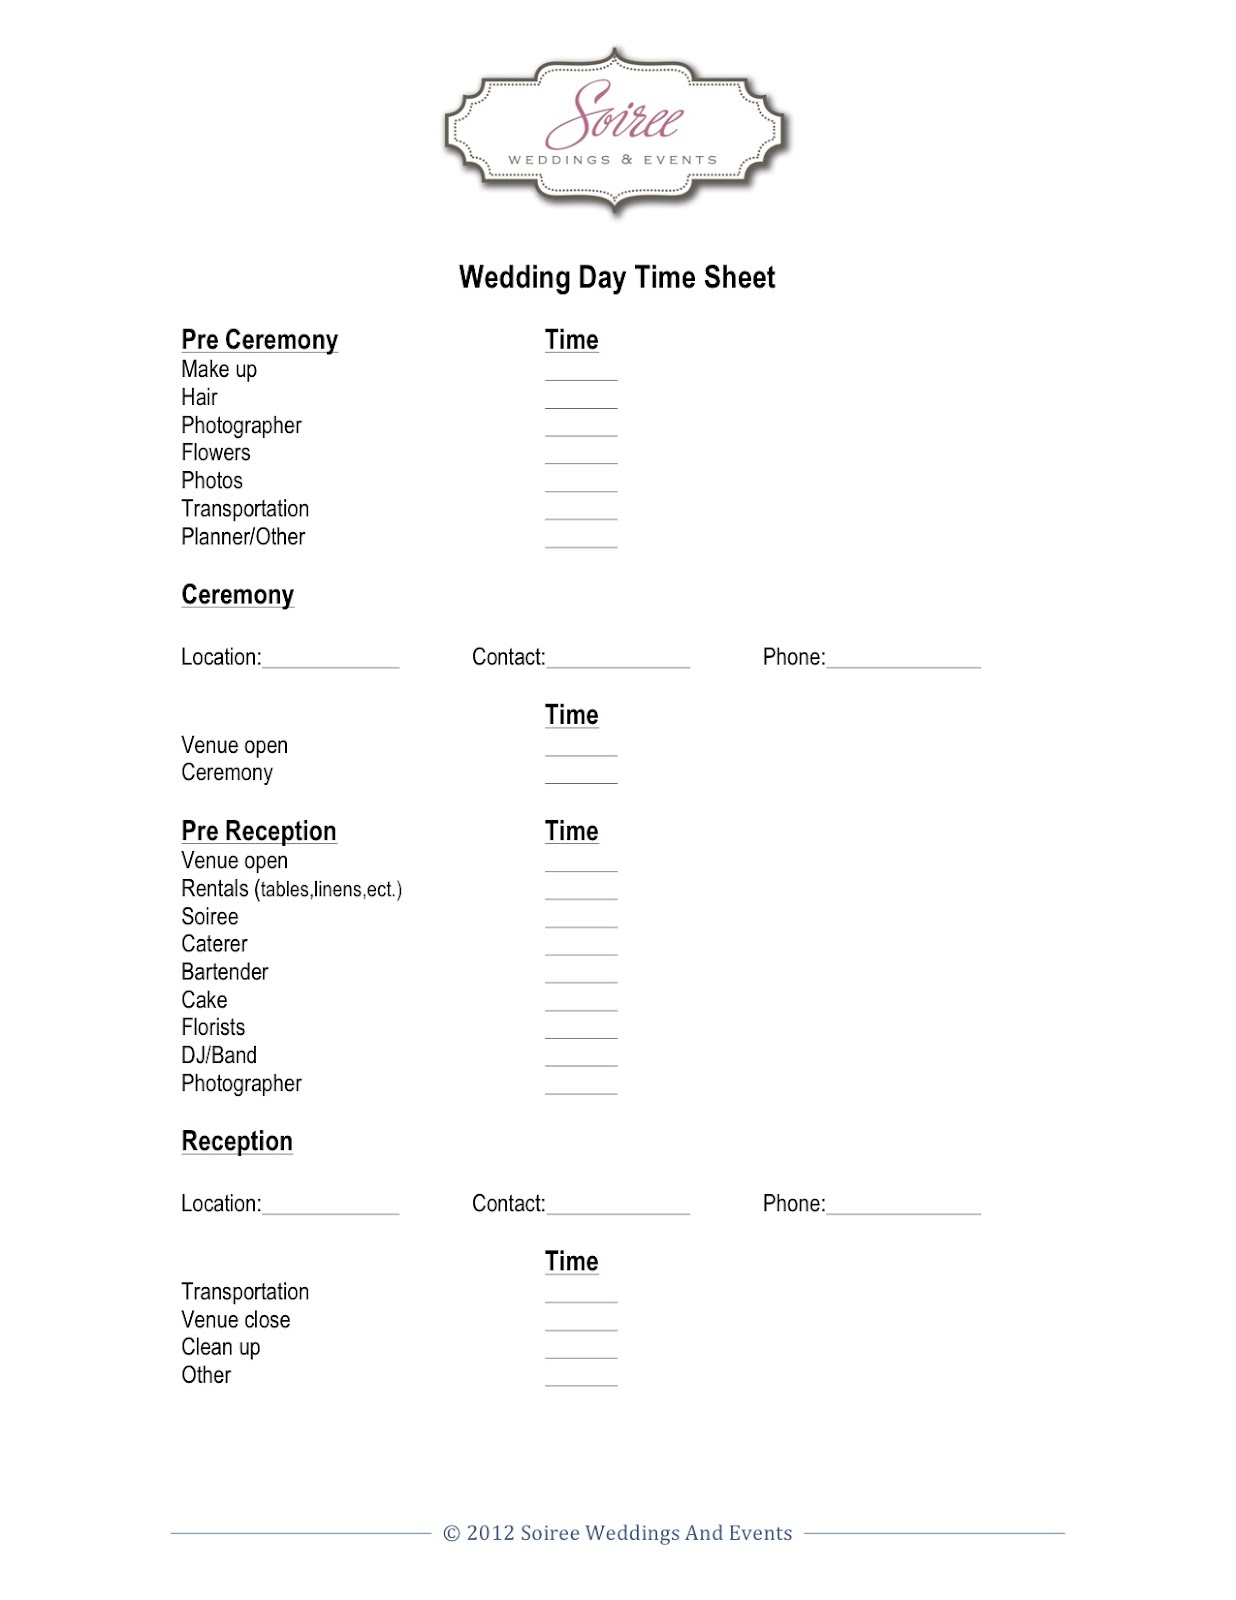 the soiree blog free download wedding day time sheet